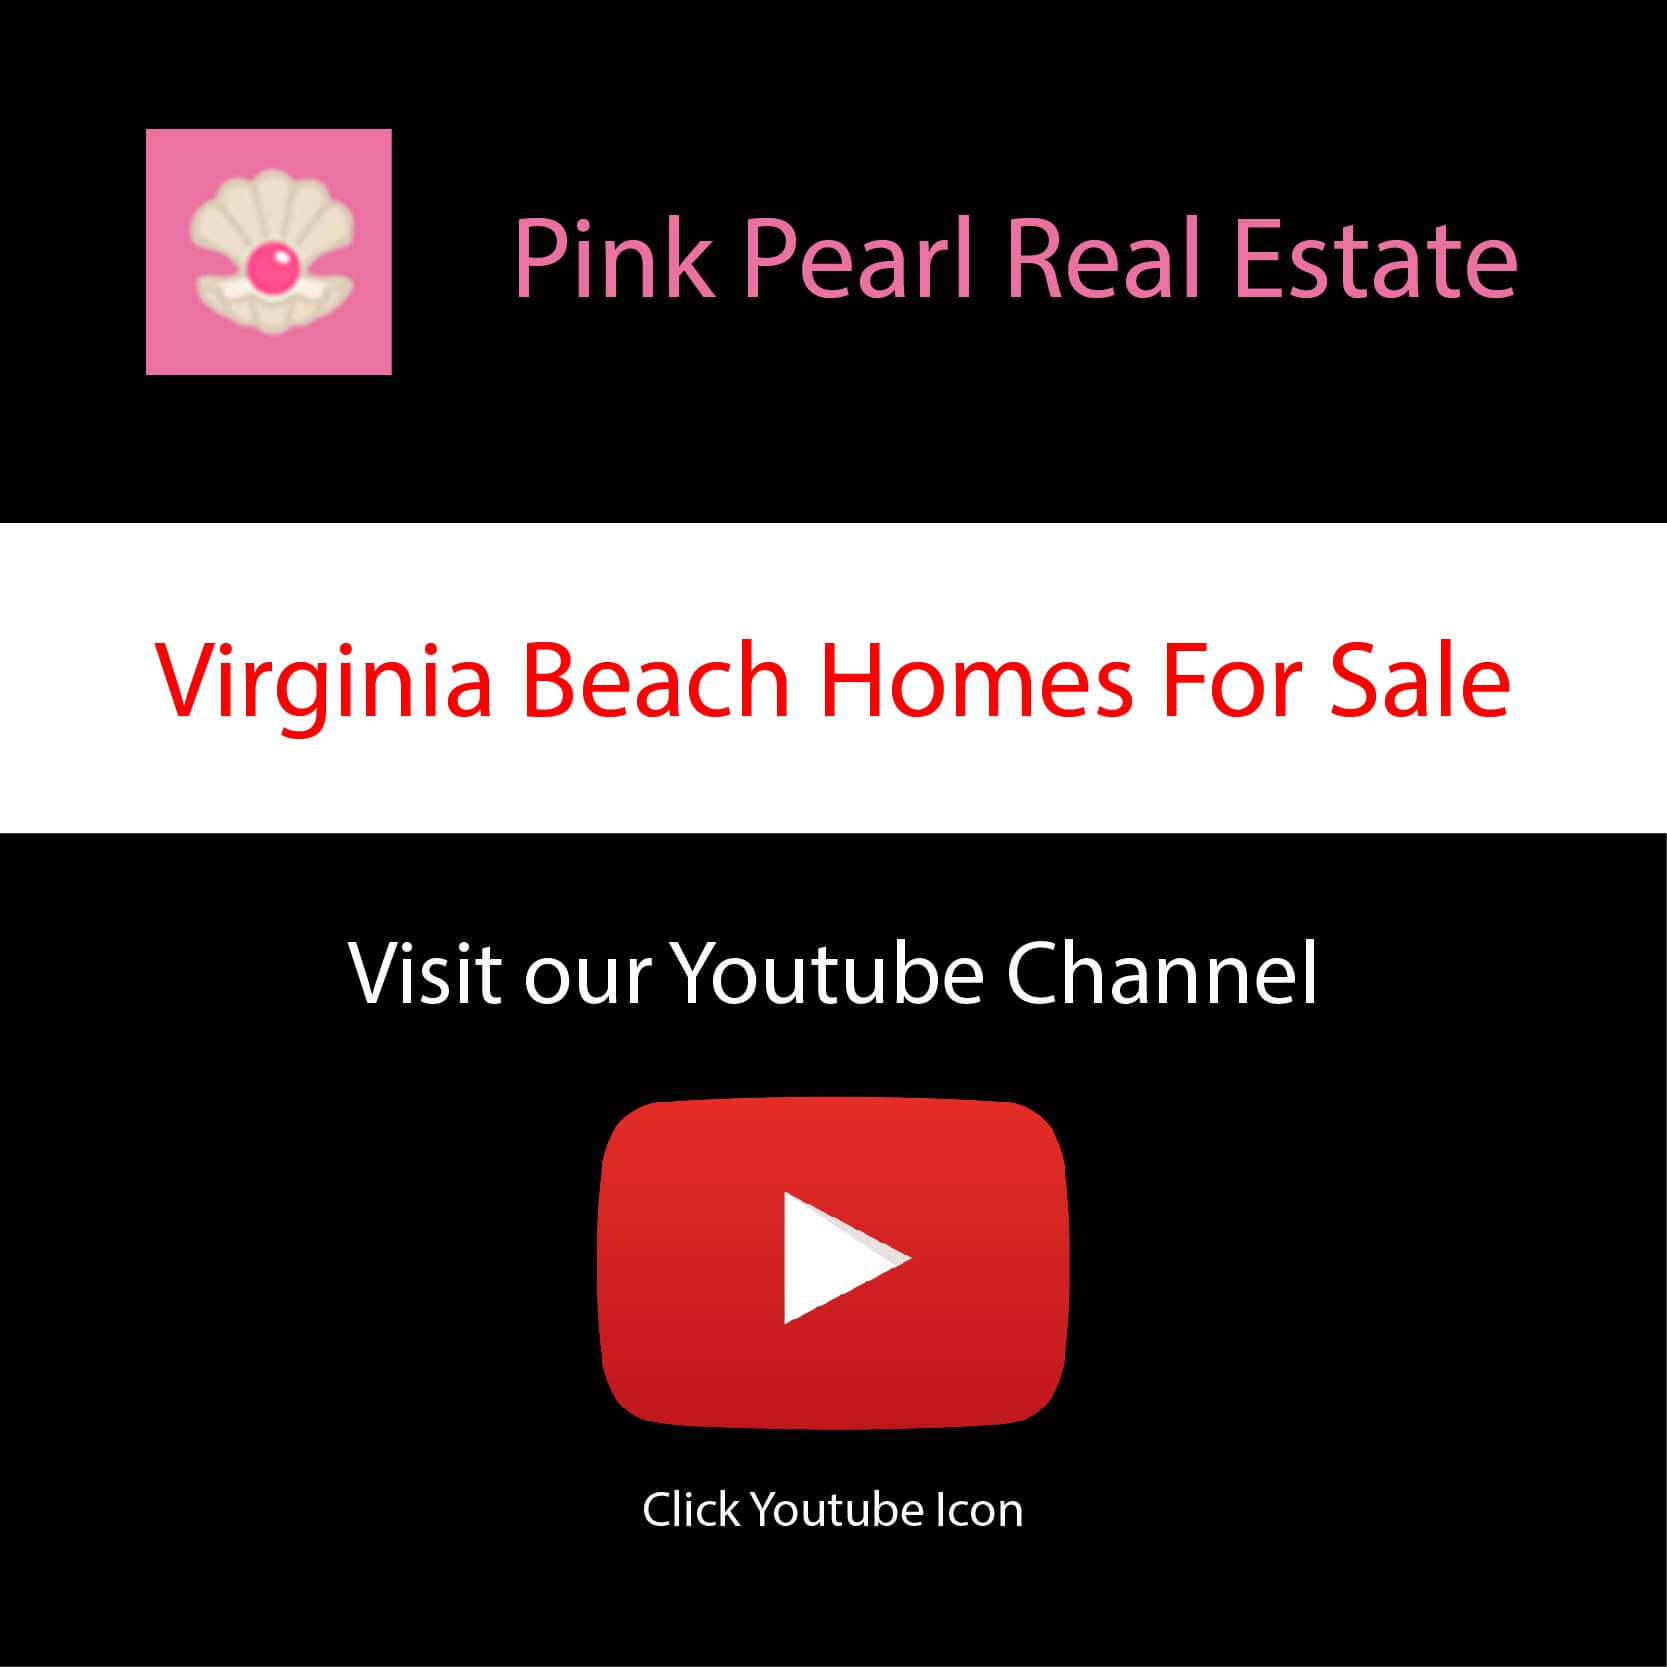 Visit Virginia Beach Homes For Sale on Youtube